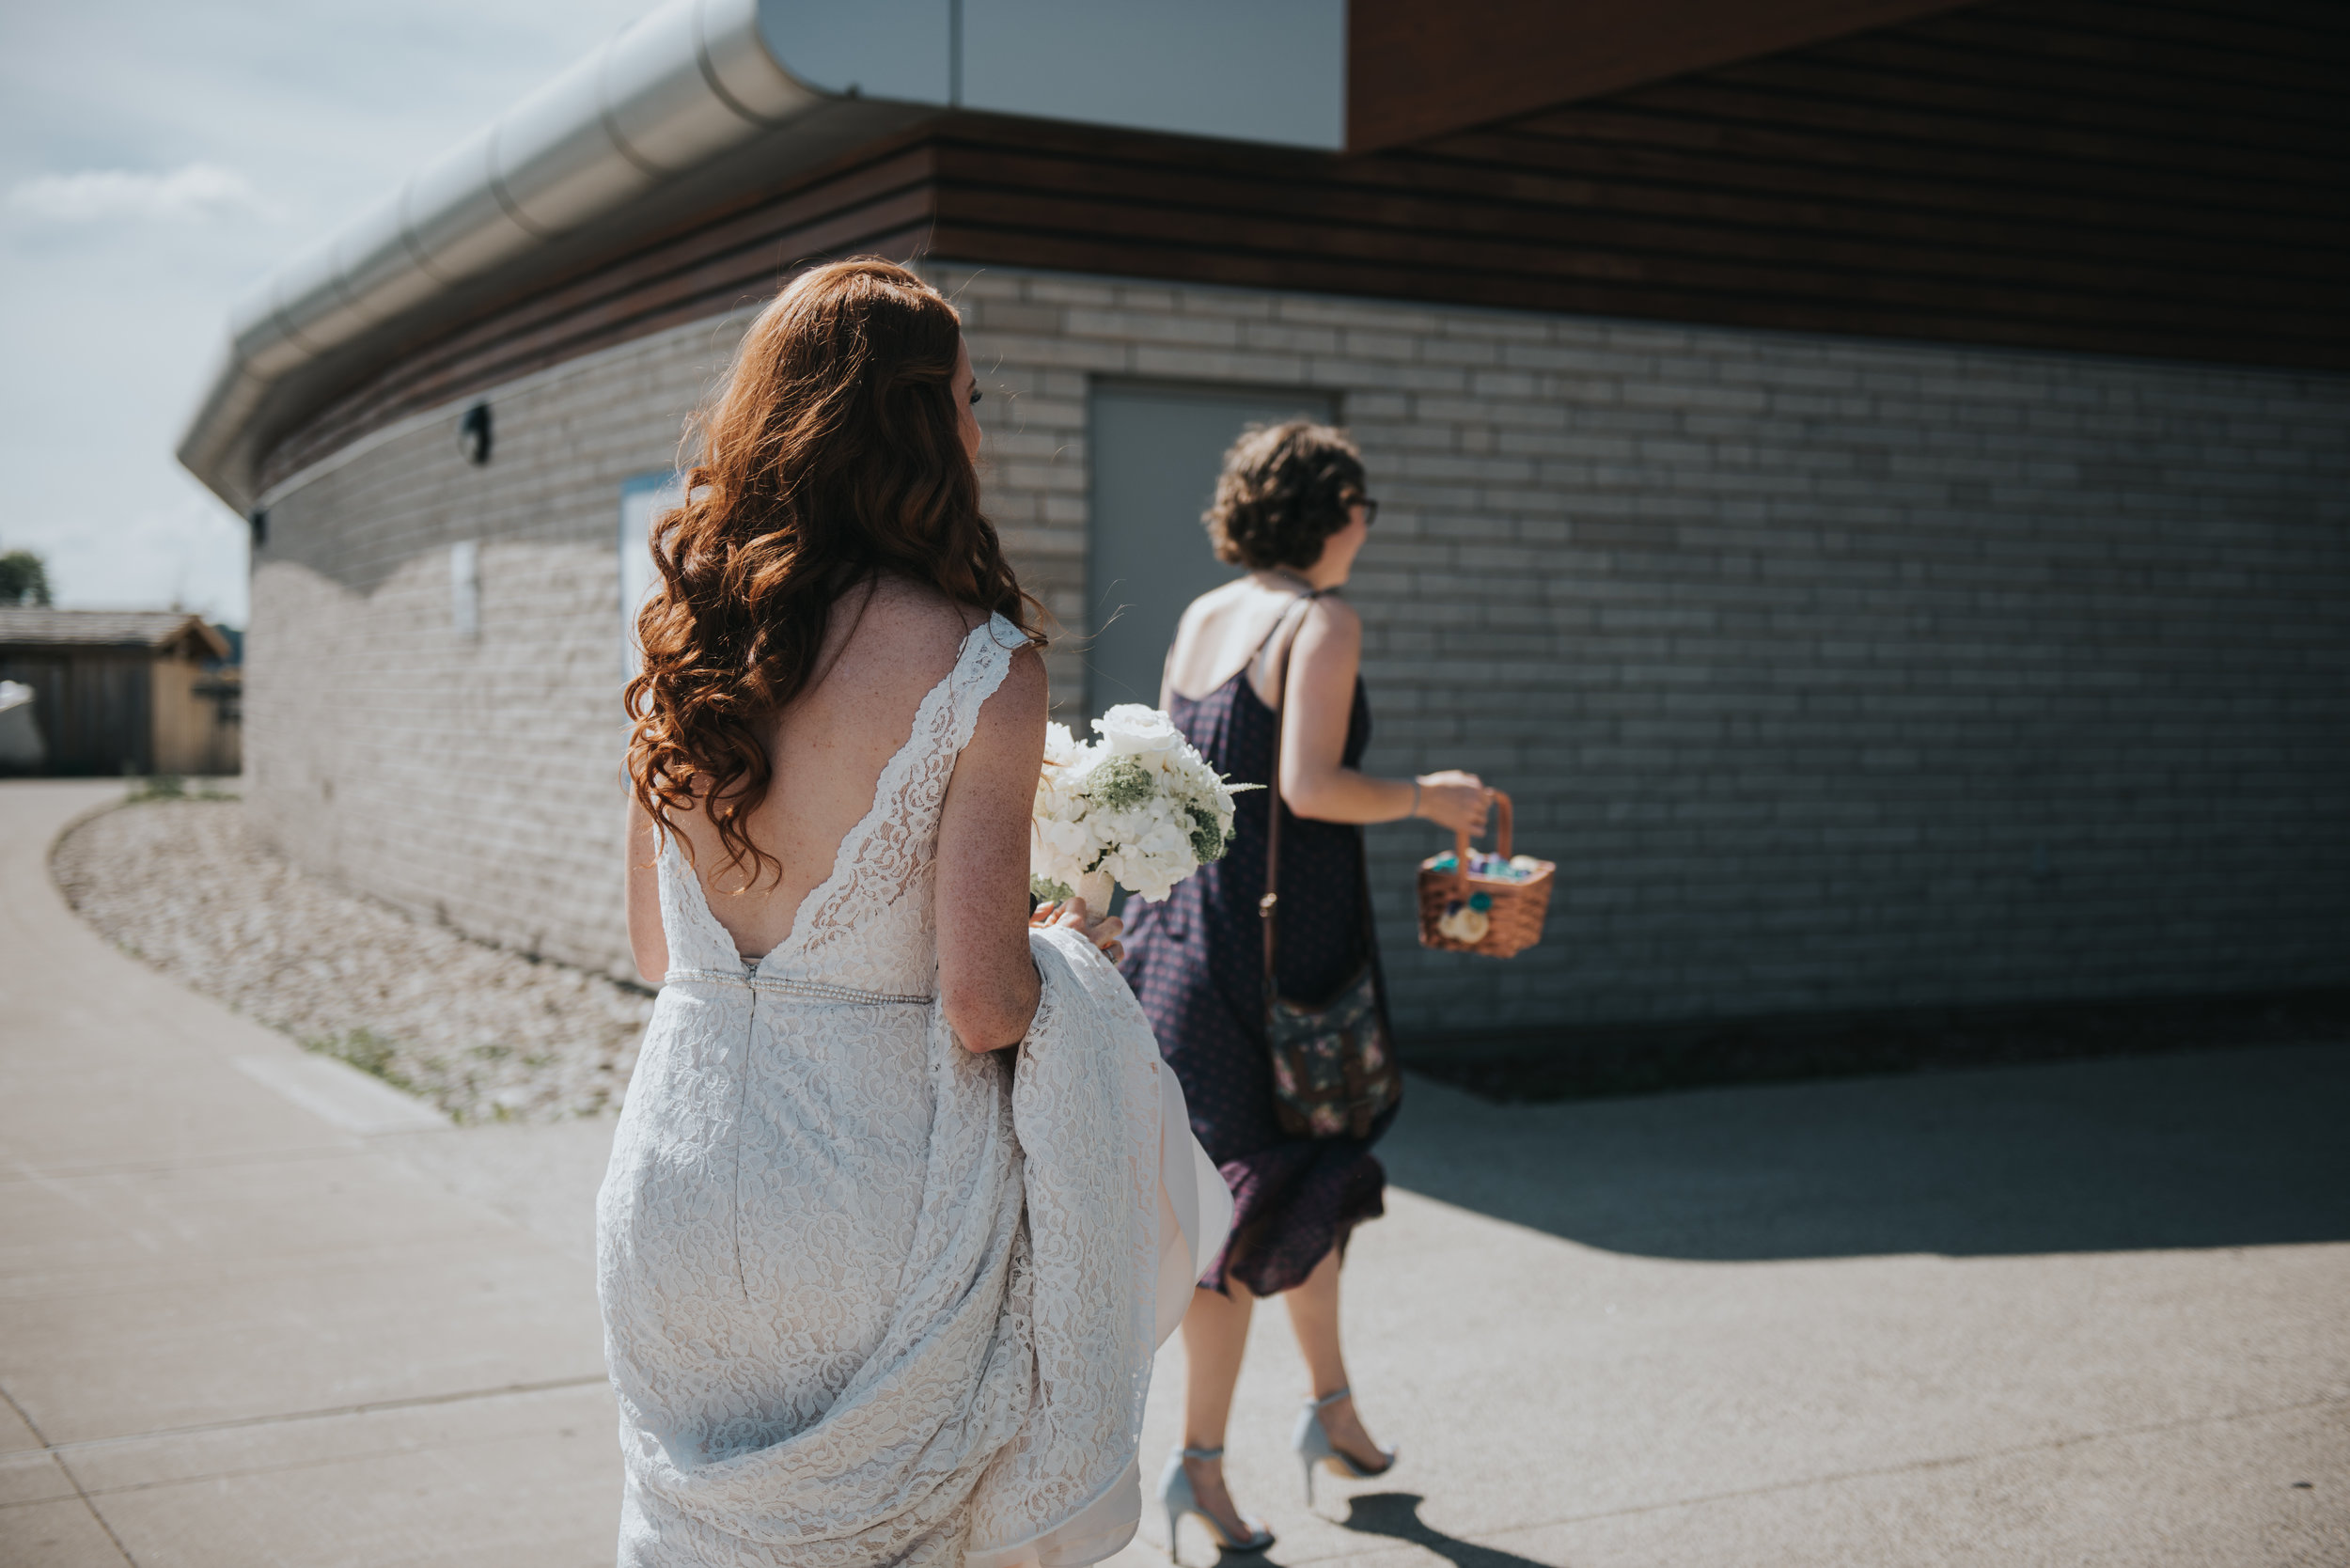 bride-arriving-toronto-outdoor-summer-wedding-documentary-wedding-photography-by-willow-birch-photo.jpg